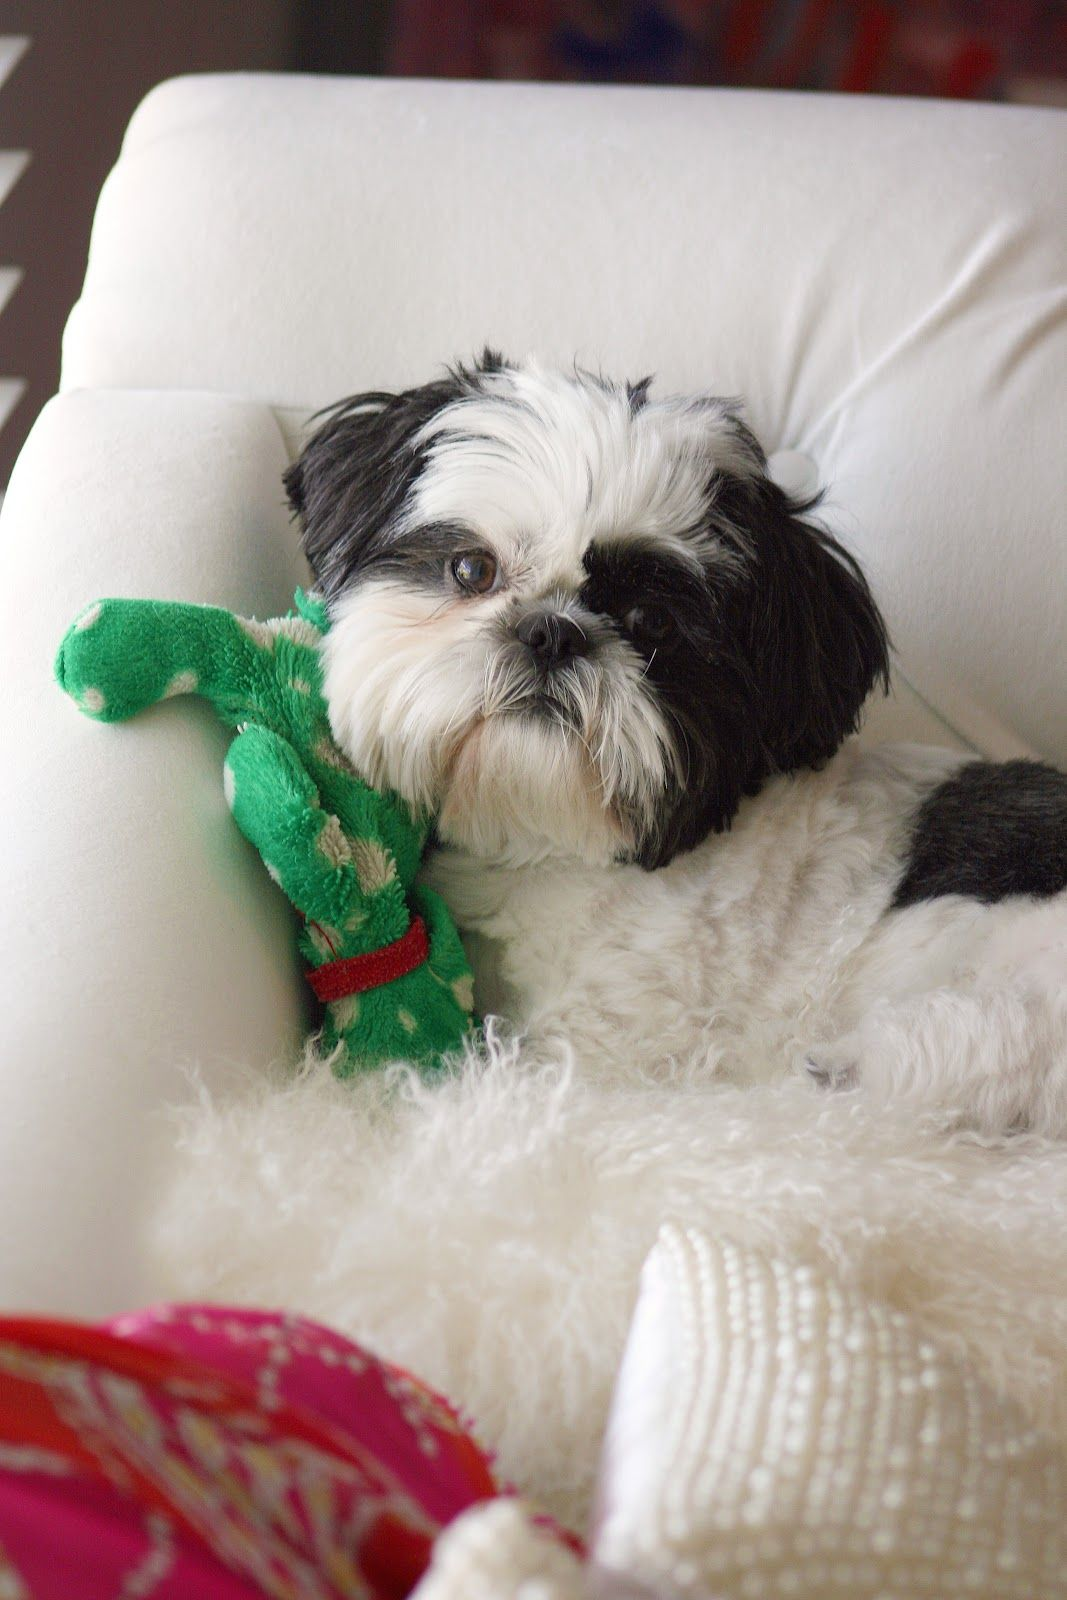 Cutest Dog Every My Shih Tzu Delilah Our Spoiled Little Girl